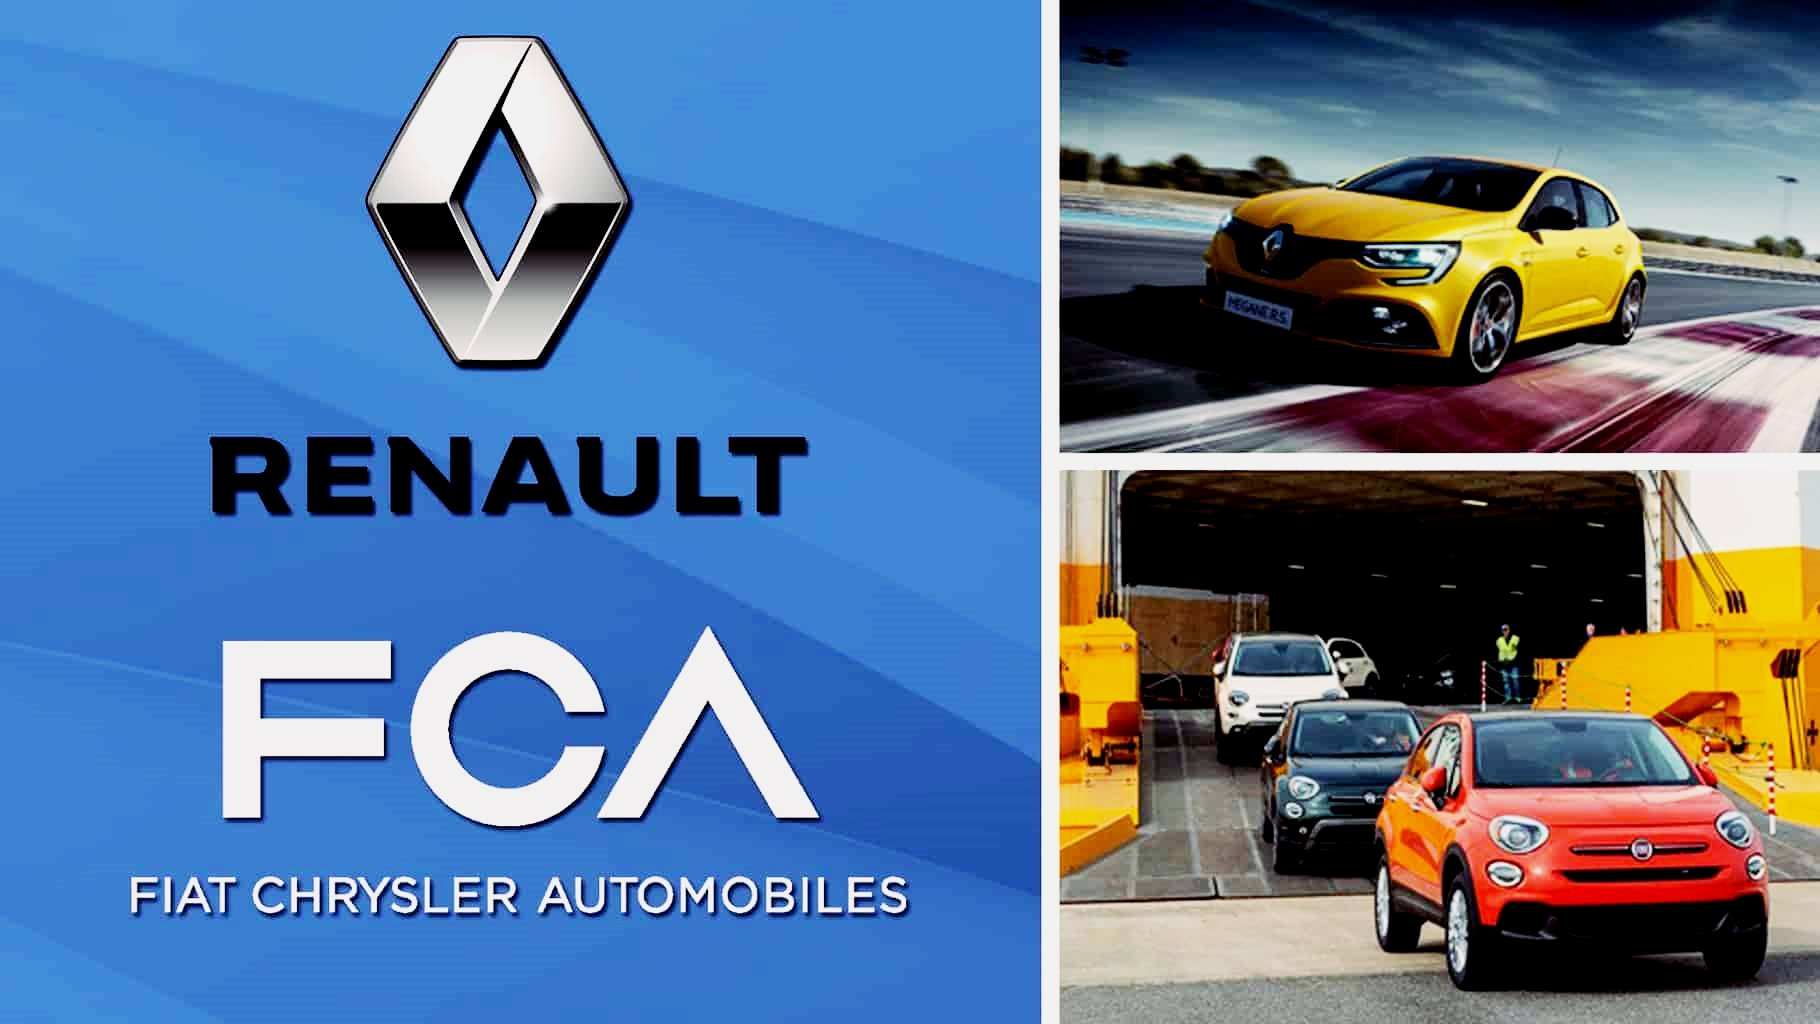 Fiat Chrysler Automobiles (FCA) : History and Facts